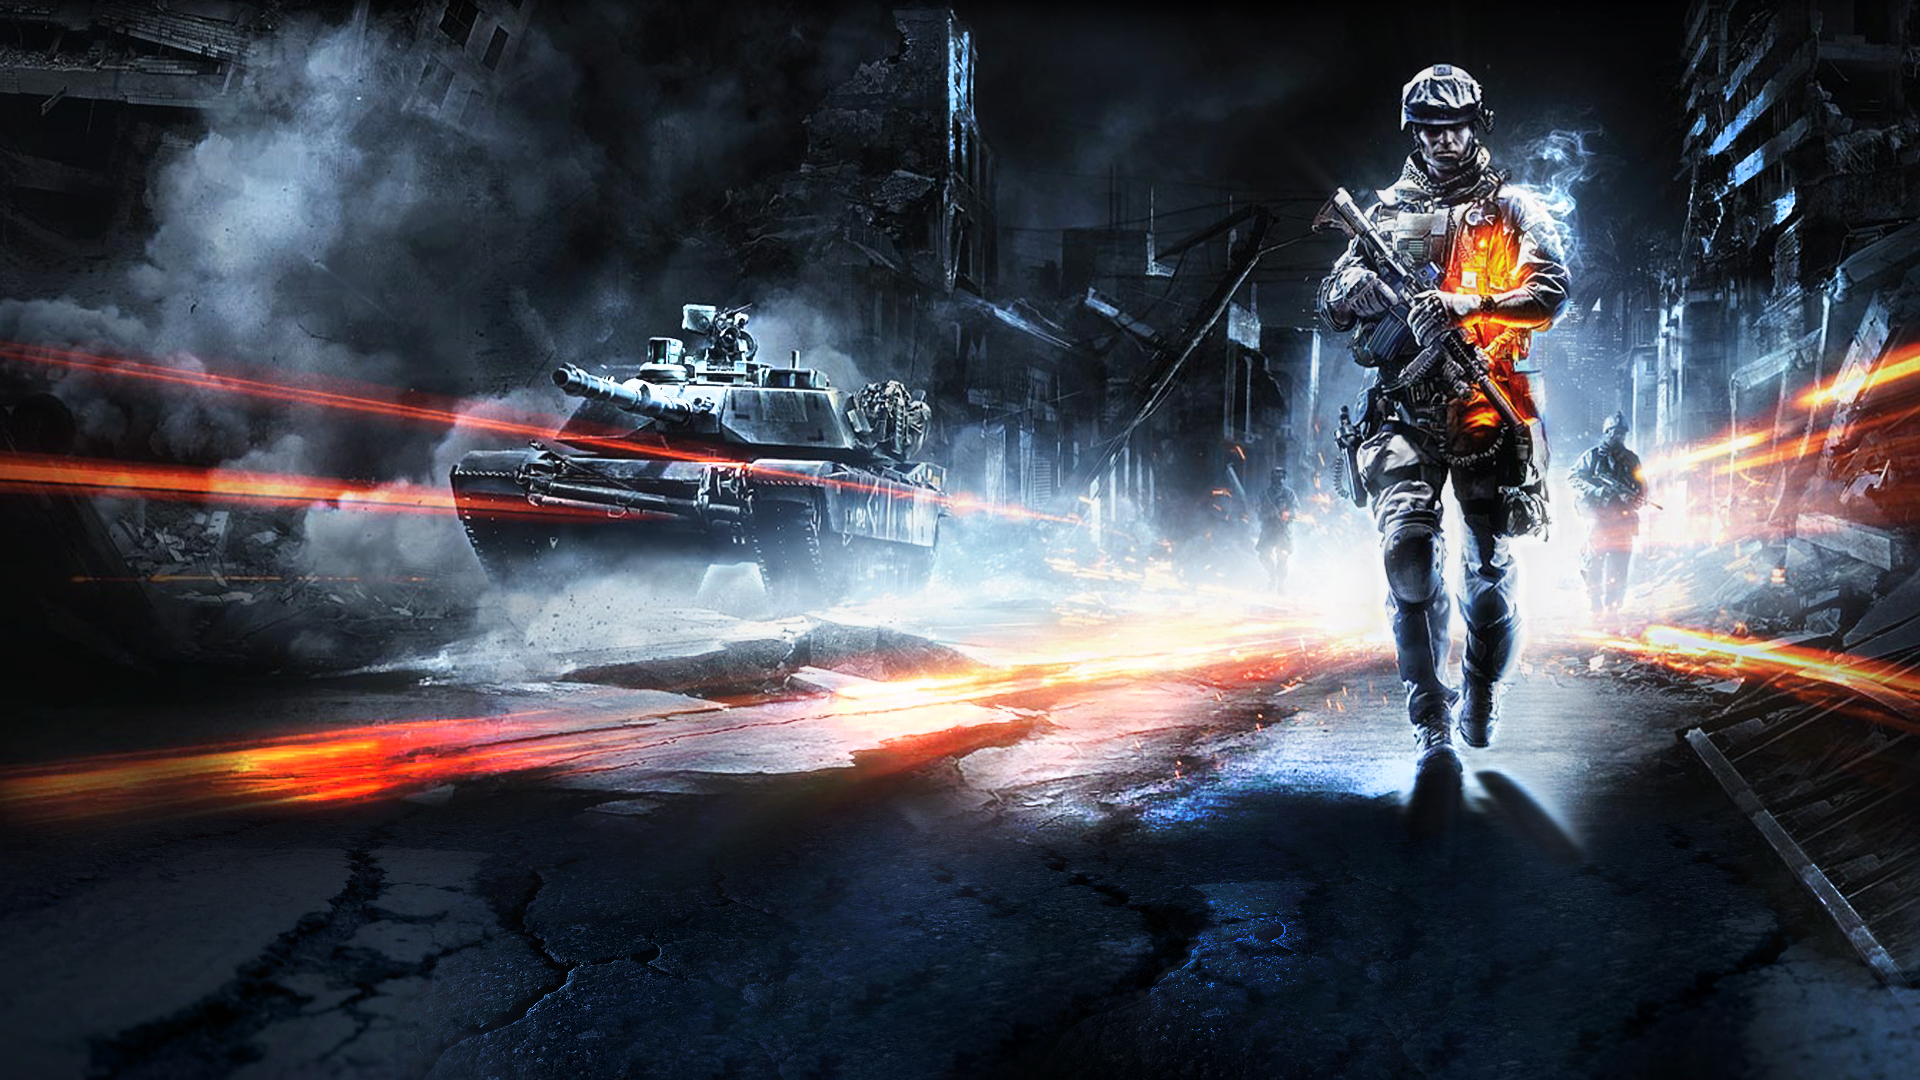 Battlefield 3 Wallpapers HD Wallpapers 1920x1080